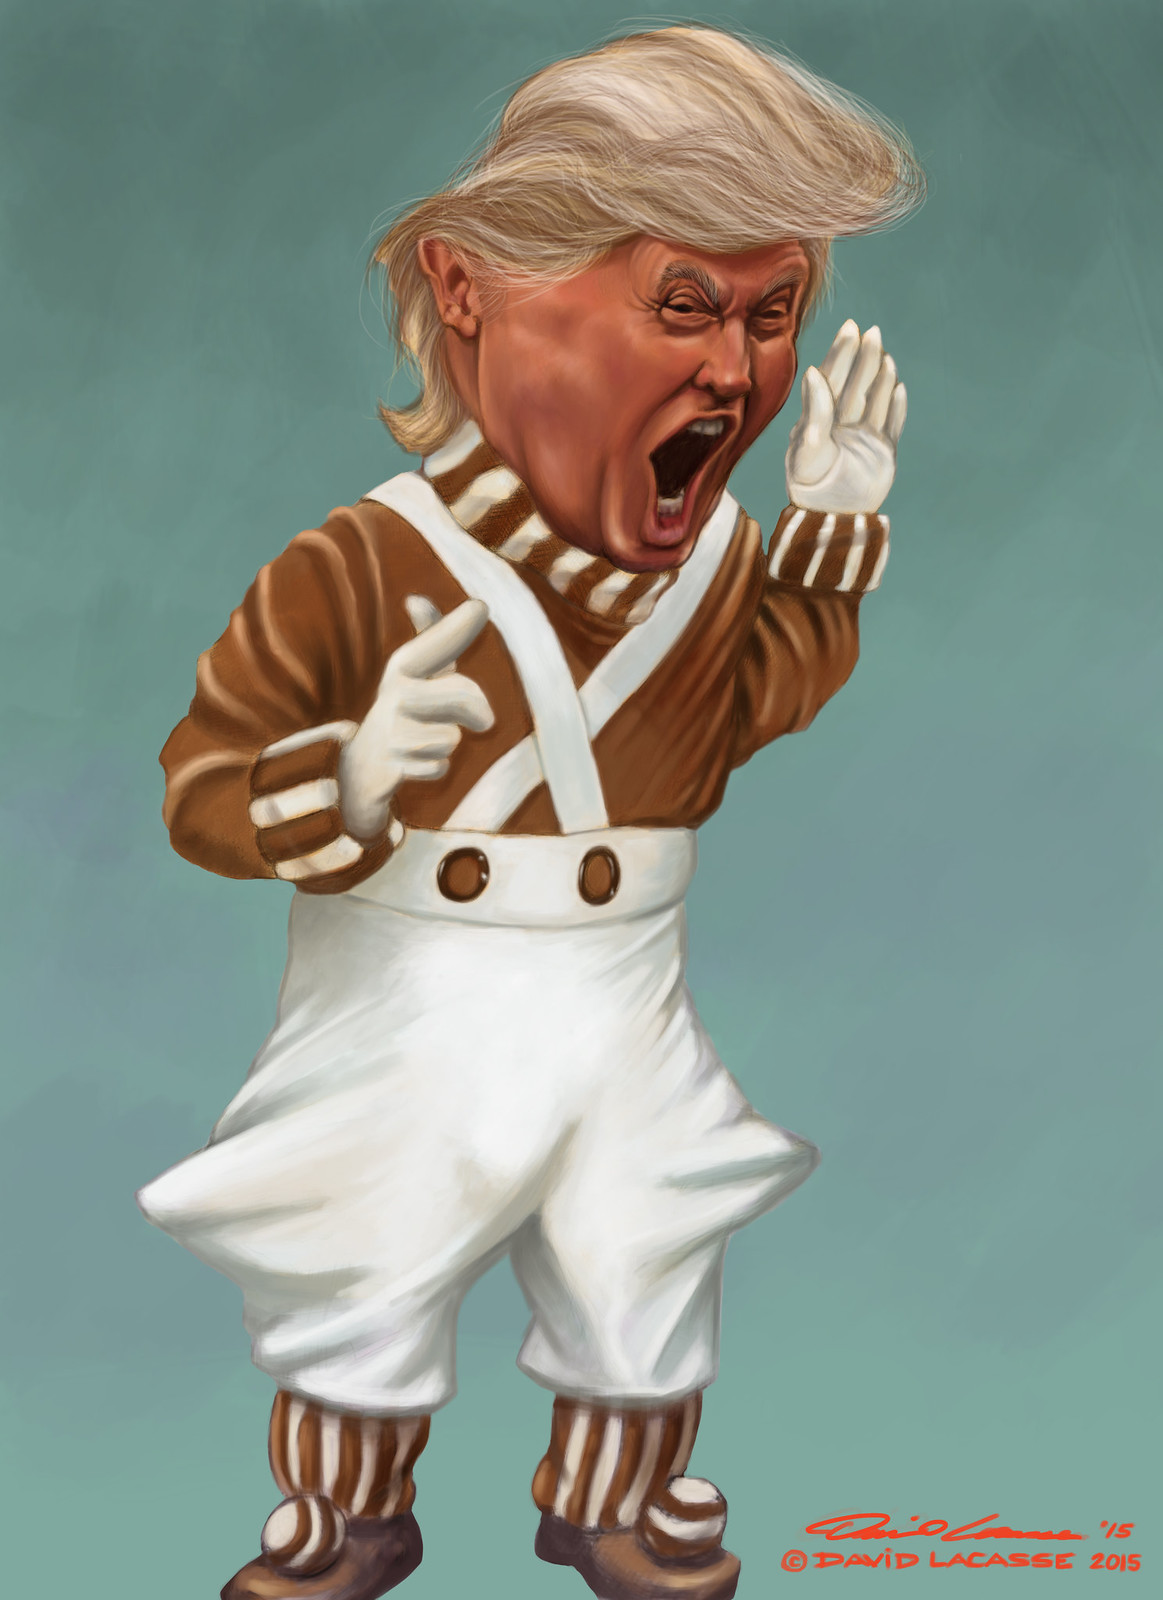 Donald Trump - Angry Oompa Loompa | by David Lacasse